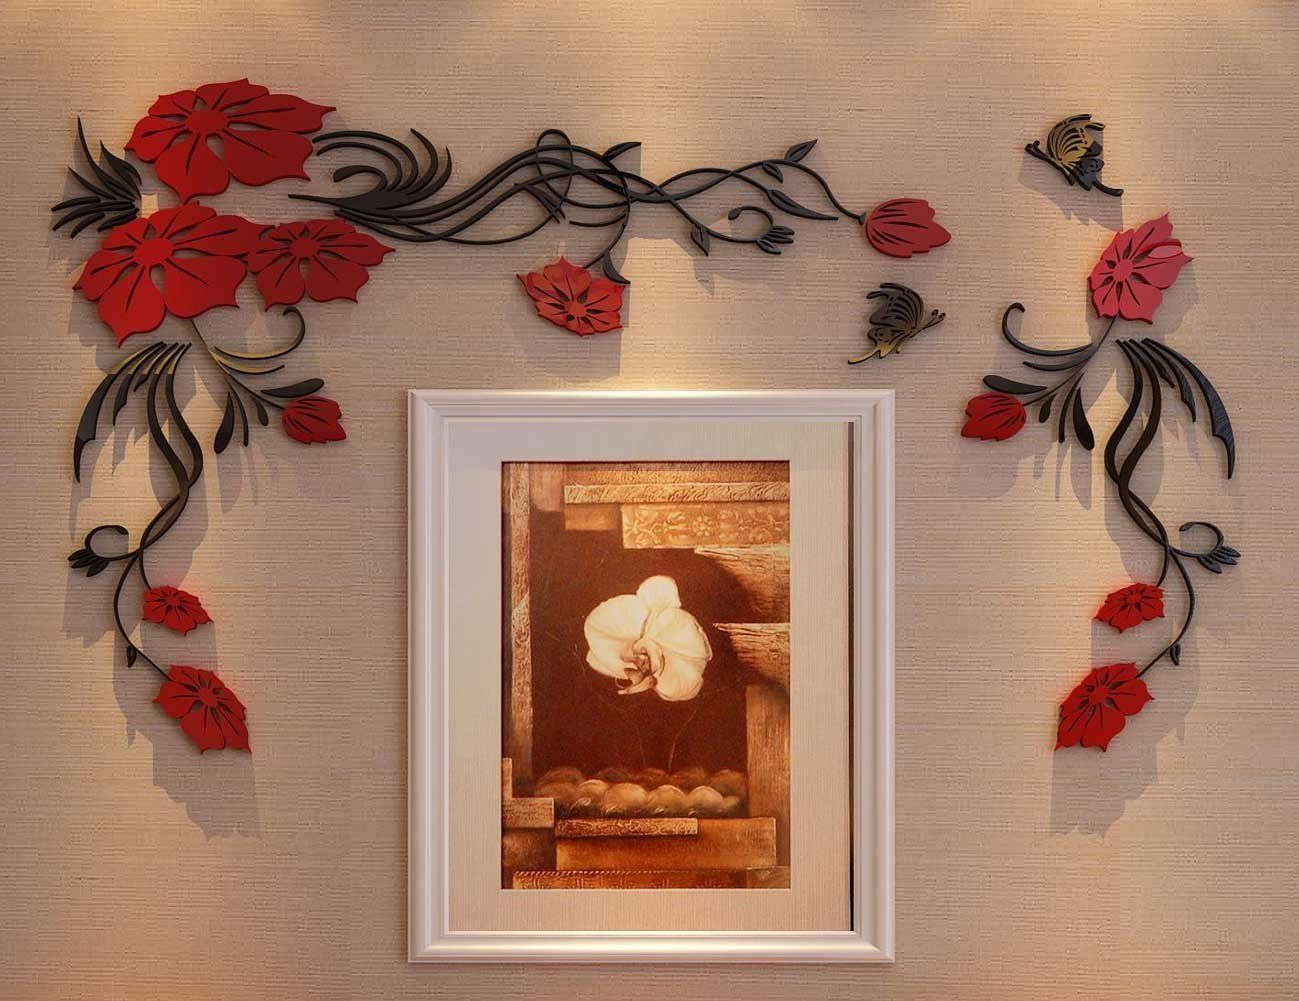 D flower and vine wall murals for living room bedroom sofa backdrop